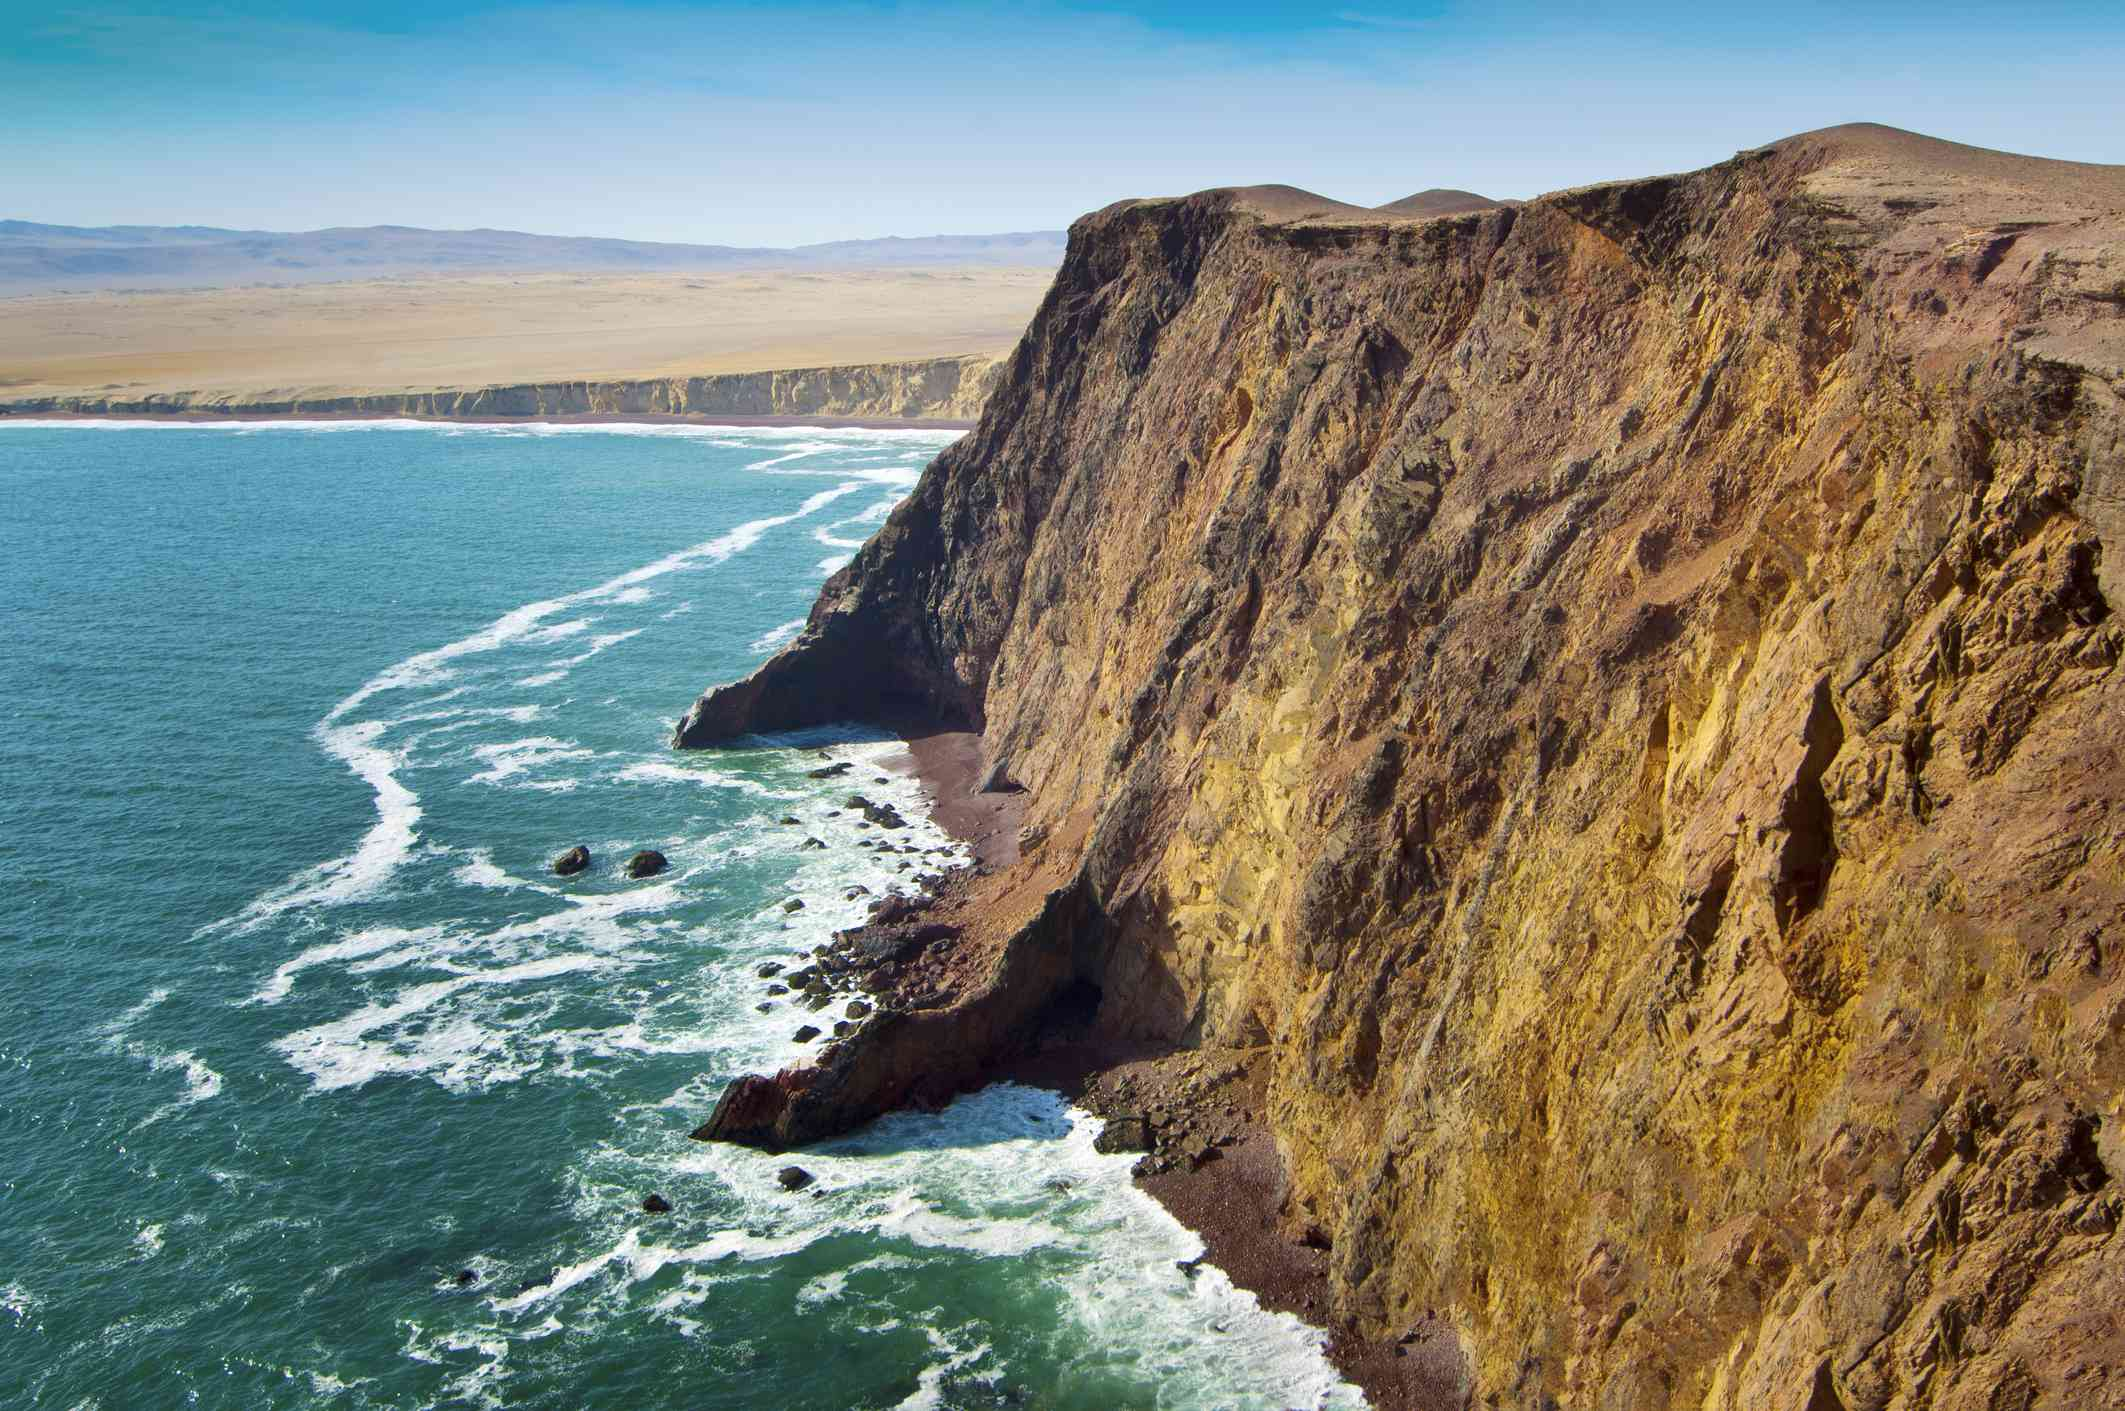 The Paracas cliffs rise above the water at Paracas National Reserve on a clear day